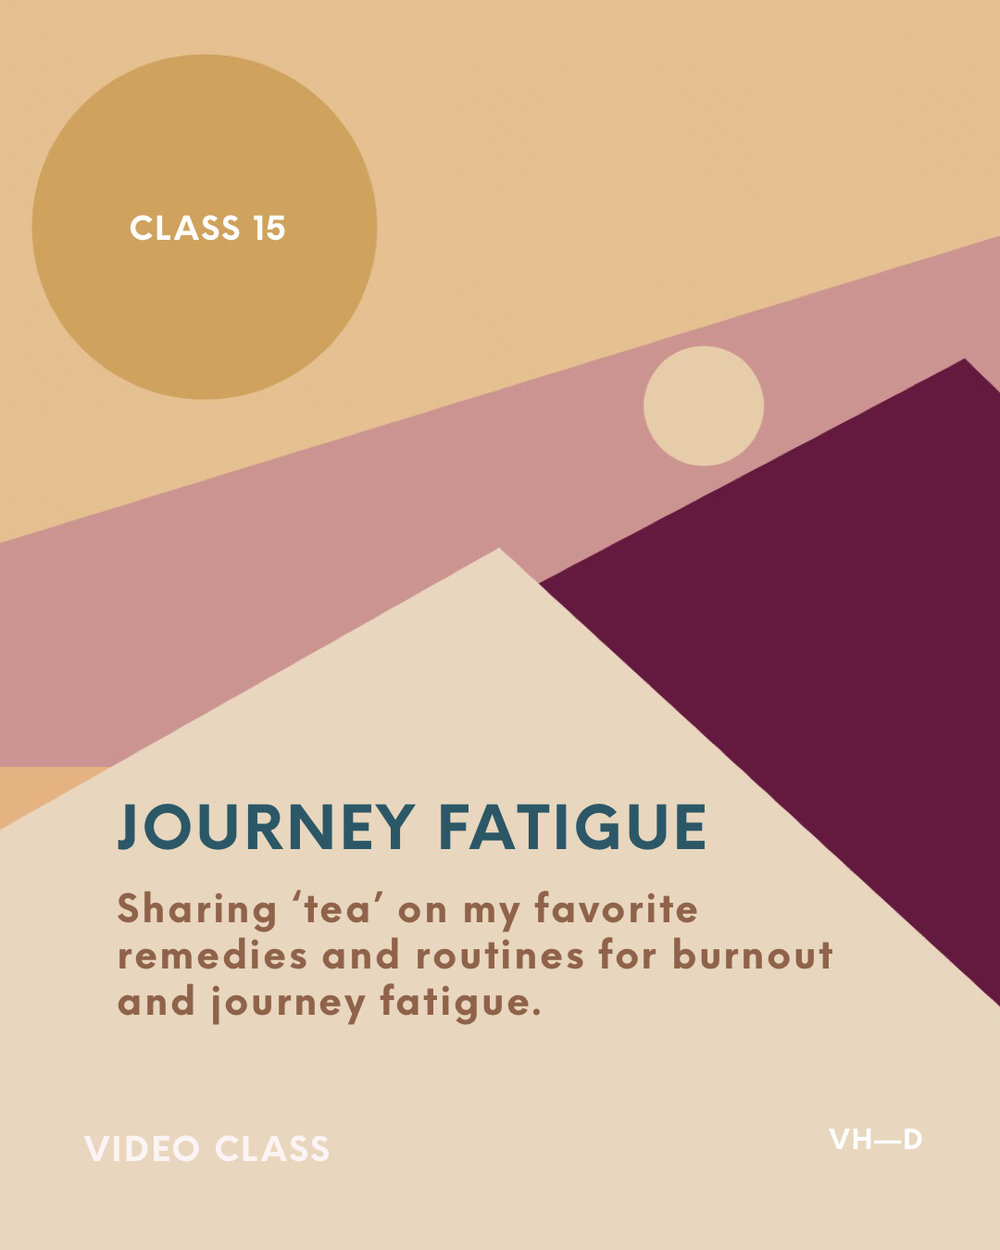 Subject 15: Journey Fatigue - With all we do, give, take on, and experience on our journey, fatigue can, and often will set in from time to time. In extreme cases, it can settle in for way longer than expected and we can become stuck with it. Until that is, we vibrate it out of our lives.I've learned that journey fatigue is also a way of our process slowing us down to pay attention and go deeper into ourselves. This can look like, and be the purpose of, a number of things. We'll be exploring through this topic in class 15, and I'll be sharing 'all the tea' my favorite go-to remedies and routines for combating and honoring journey fatigue.More in class!